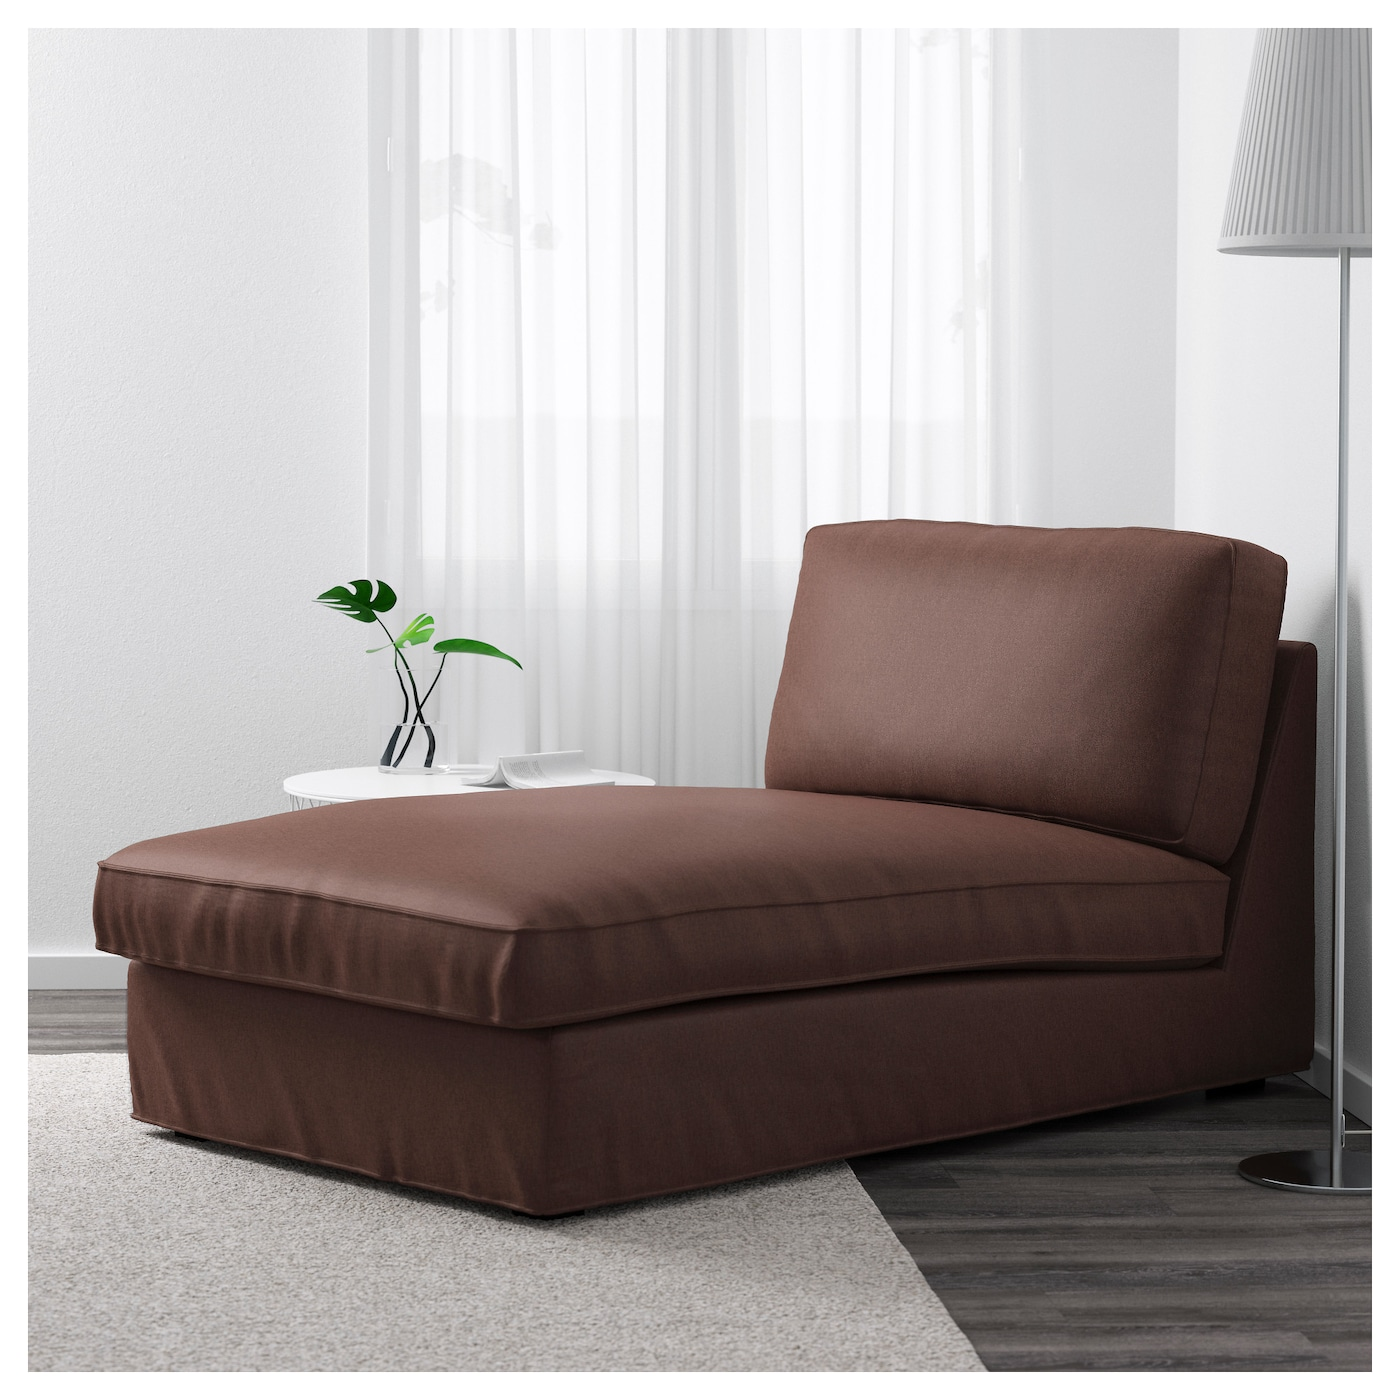 Kivik chaise longue borred dark brown ikea for Chaise longue ikea